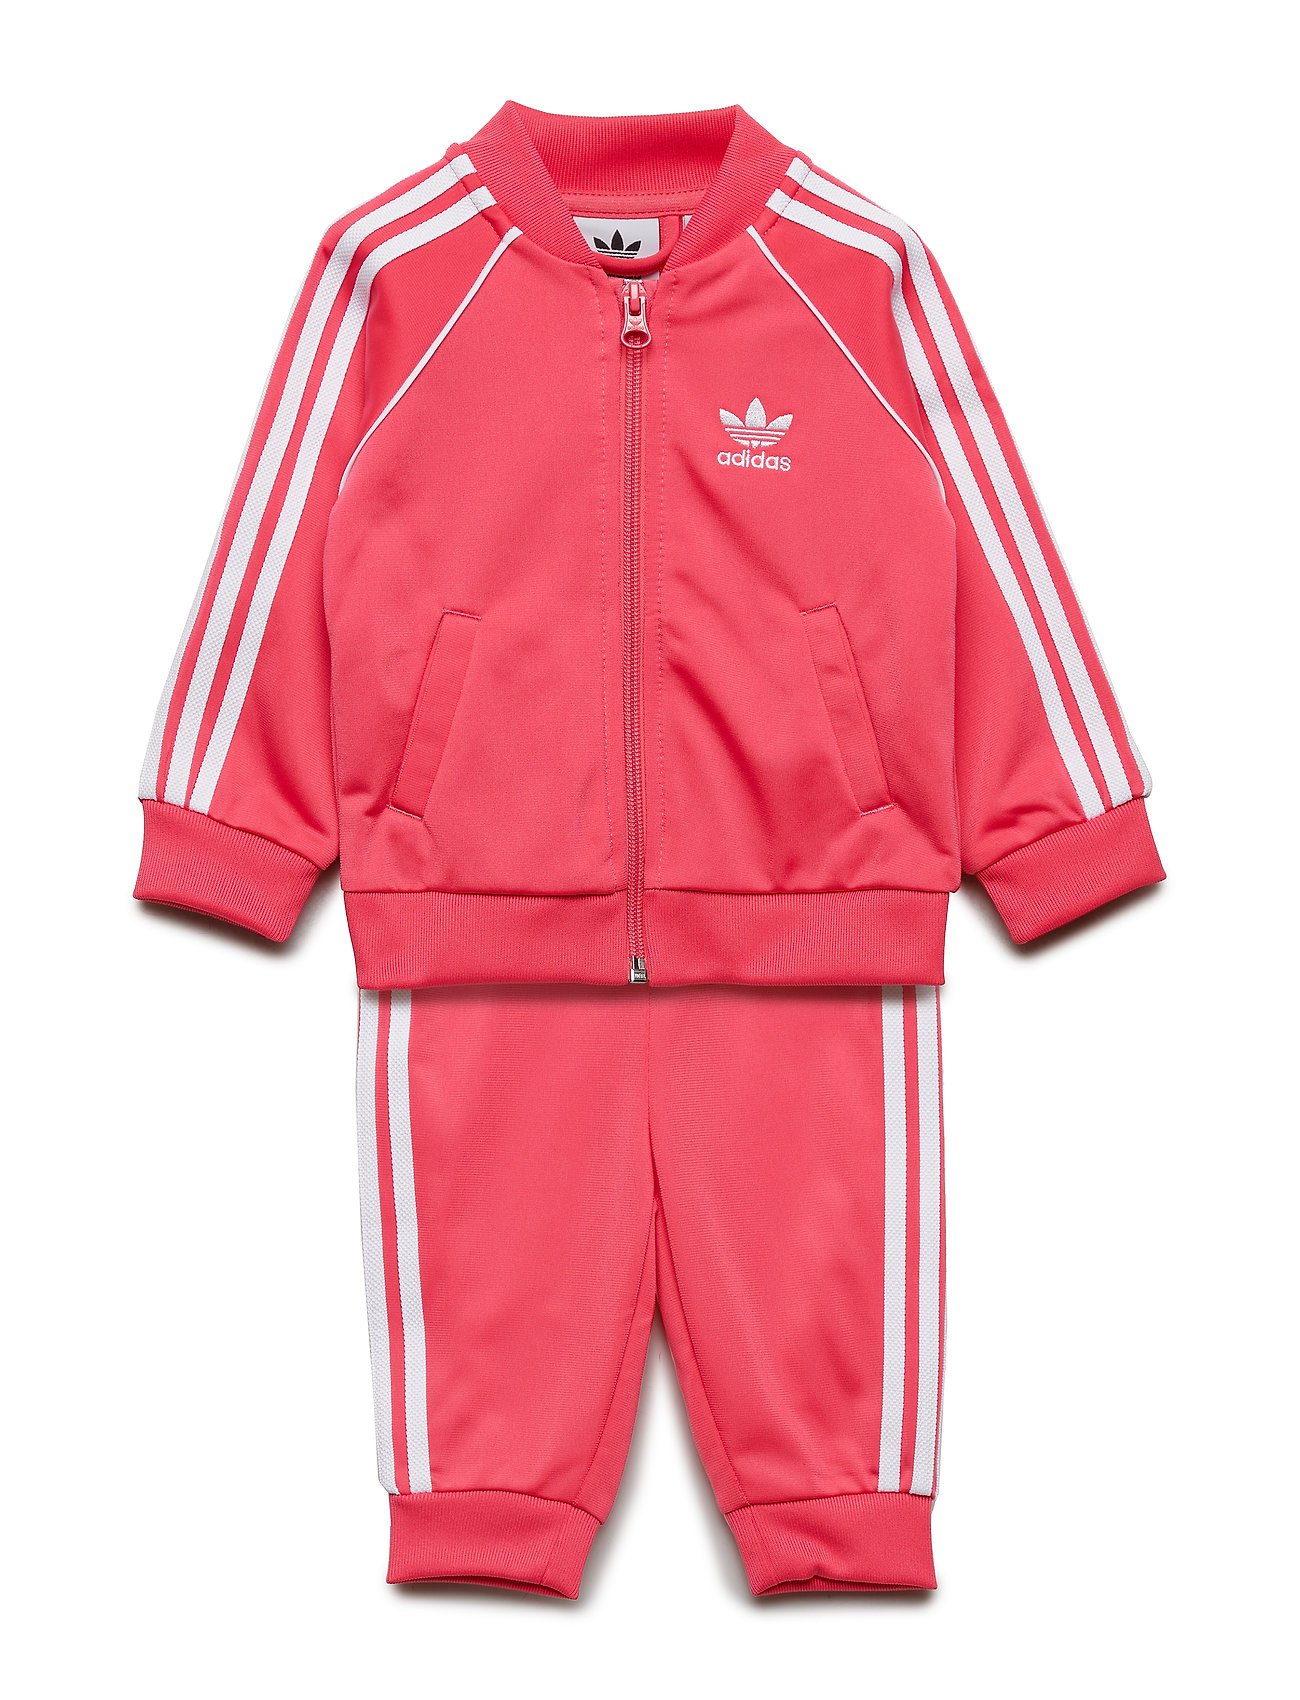 adidas Originals SUPERSTAR SUIT - REAPNK/WHITE